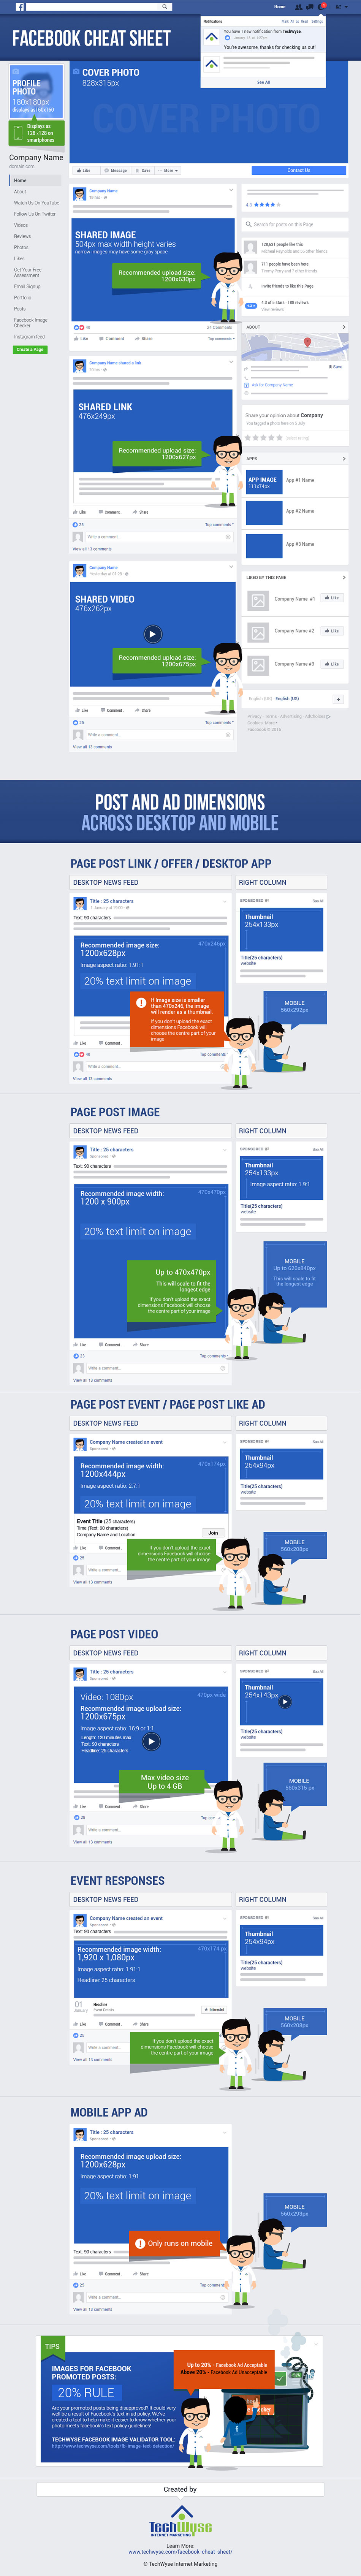 3 Reasons Why You Must Use Optimal Facebook Image Dimensions & Cheat Sheet